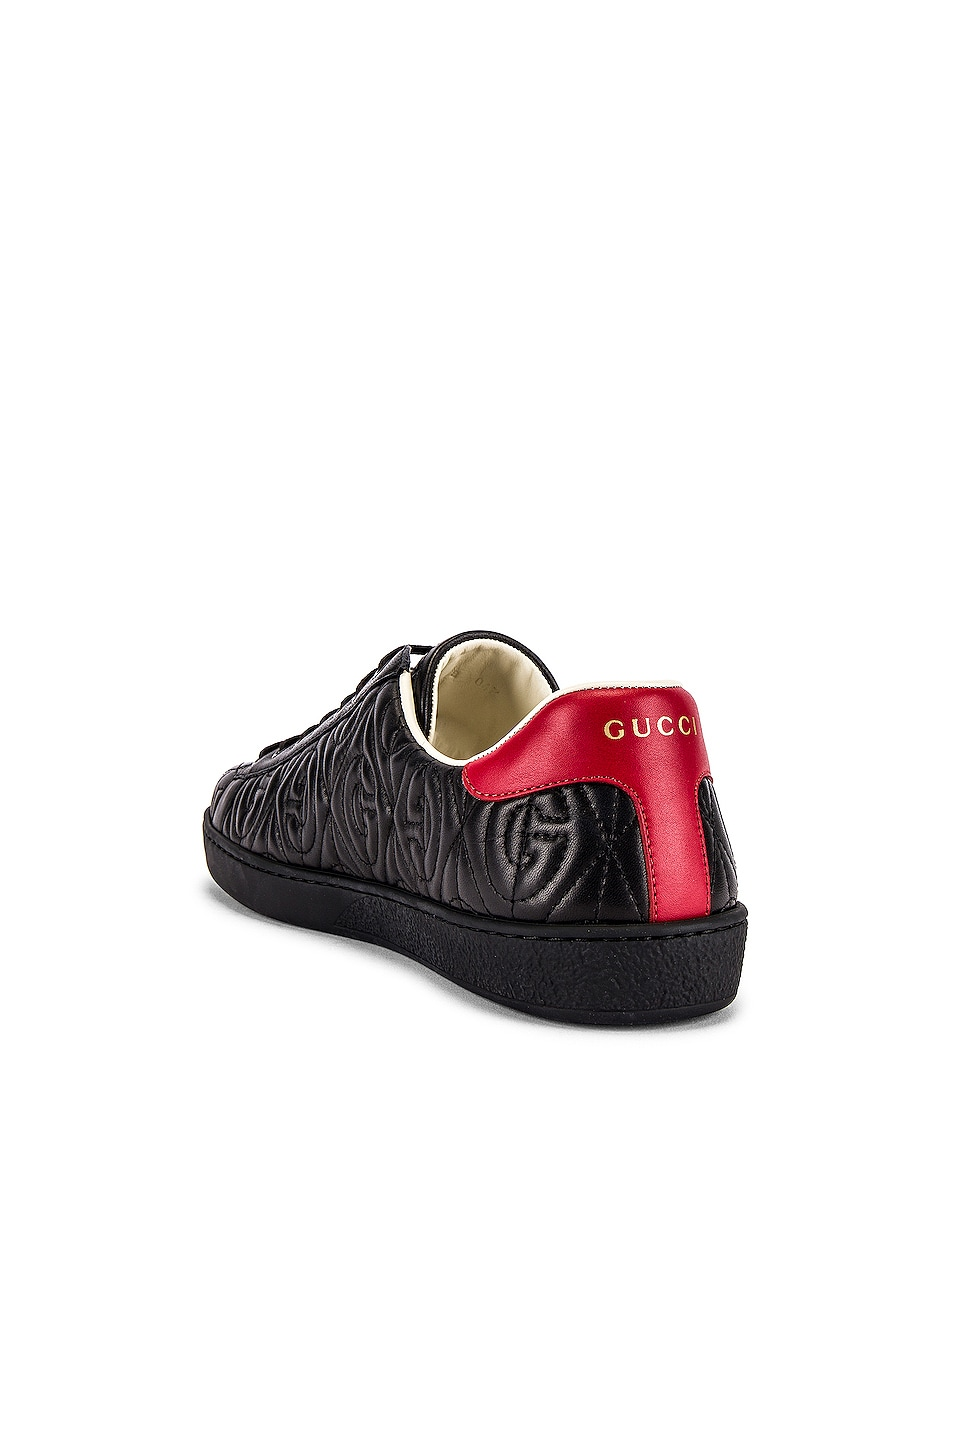 Image 3 of Gucci New Ace Sneaker in Black & Red Flame